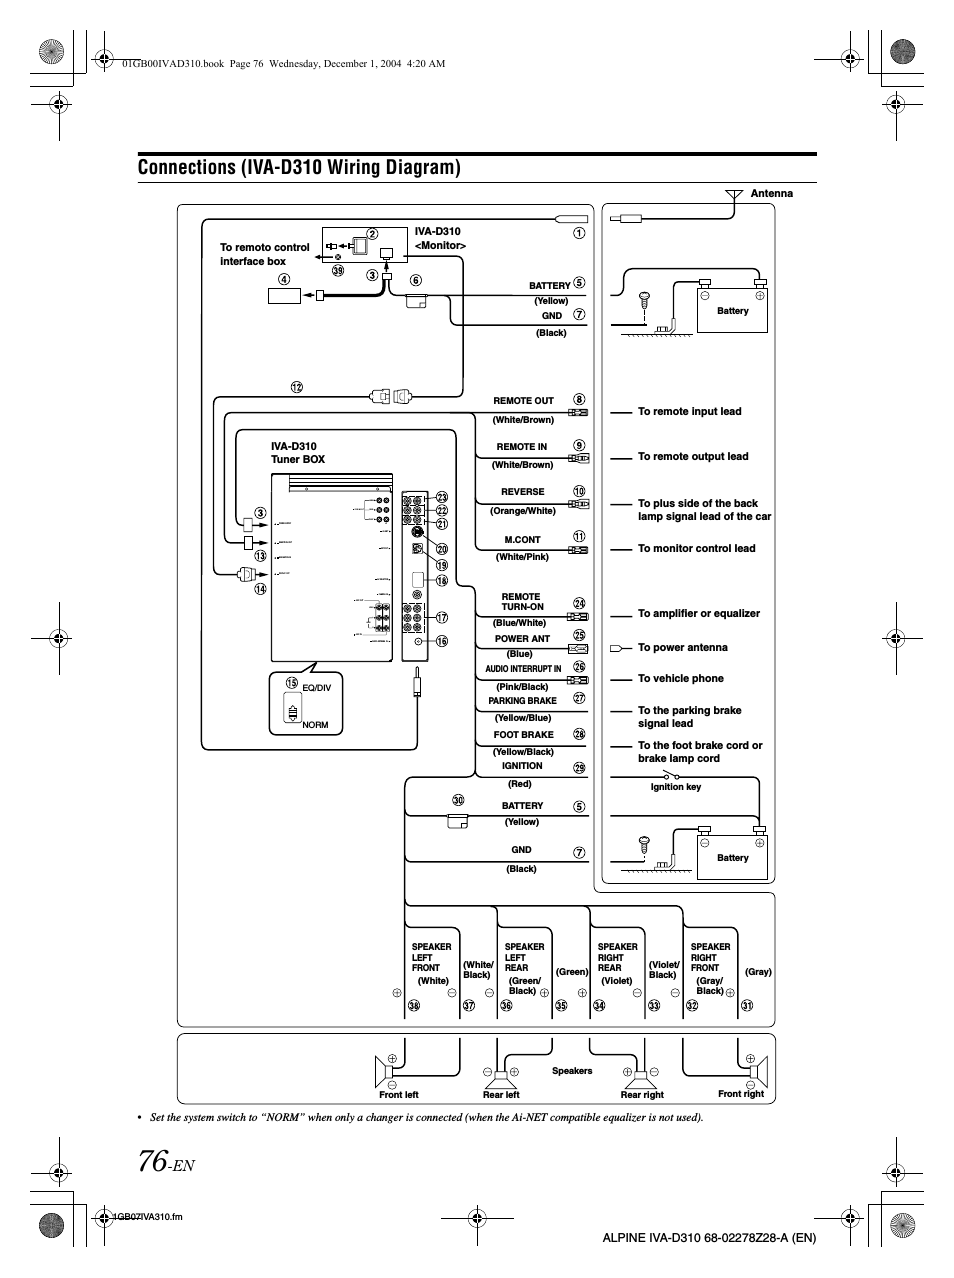 Alpine Cva 1005 Wiring Diagram from static-cdn.imageservice.cloud